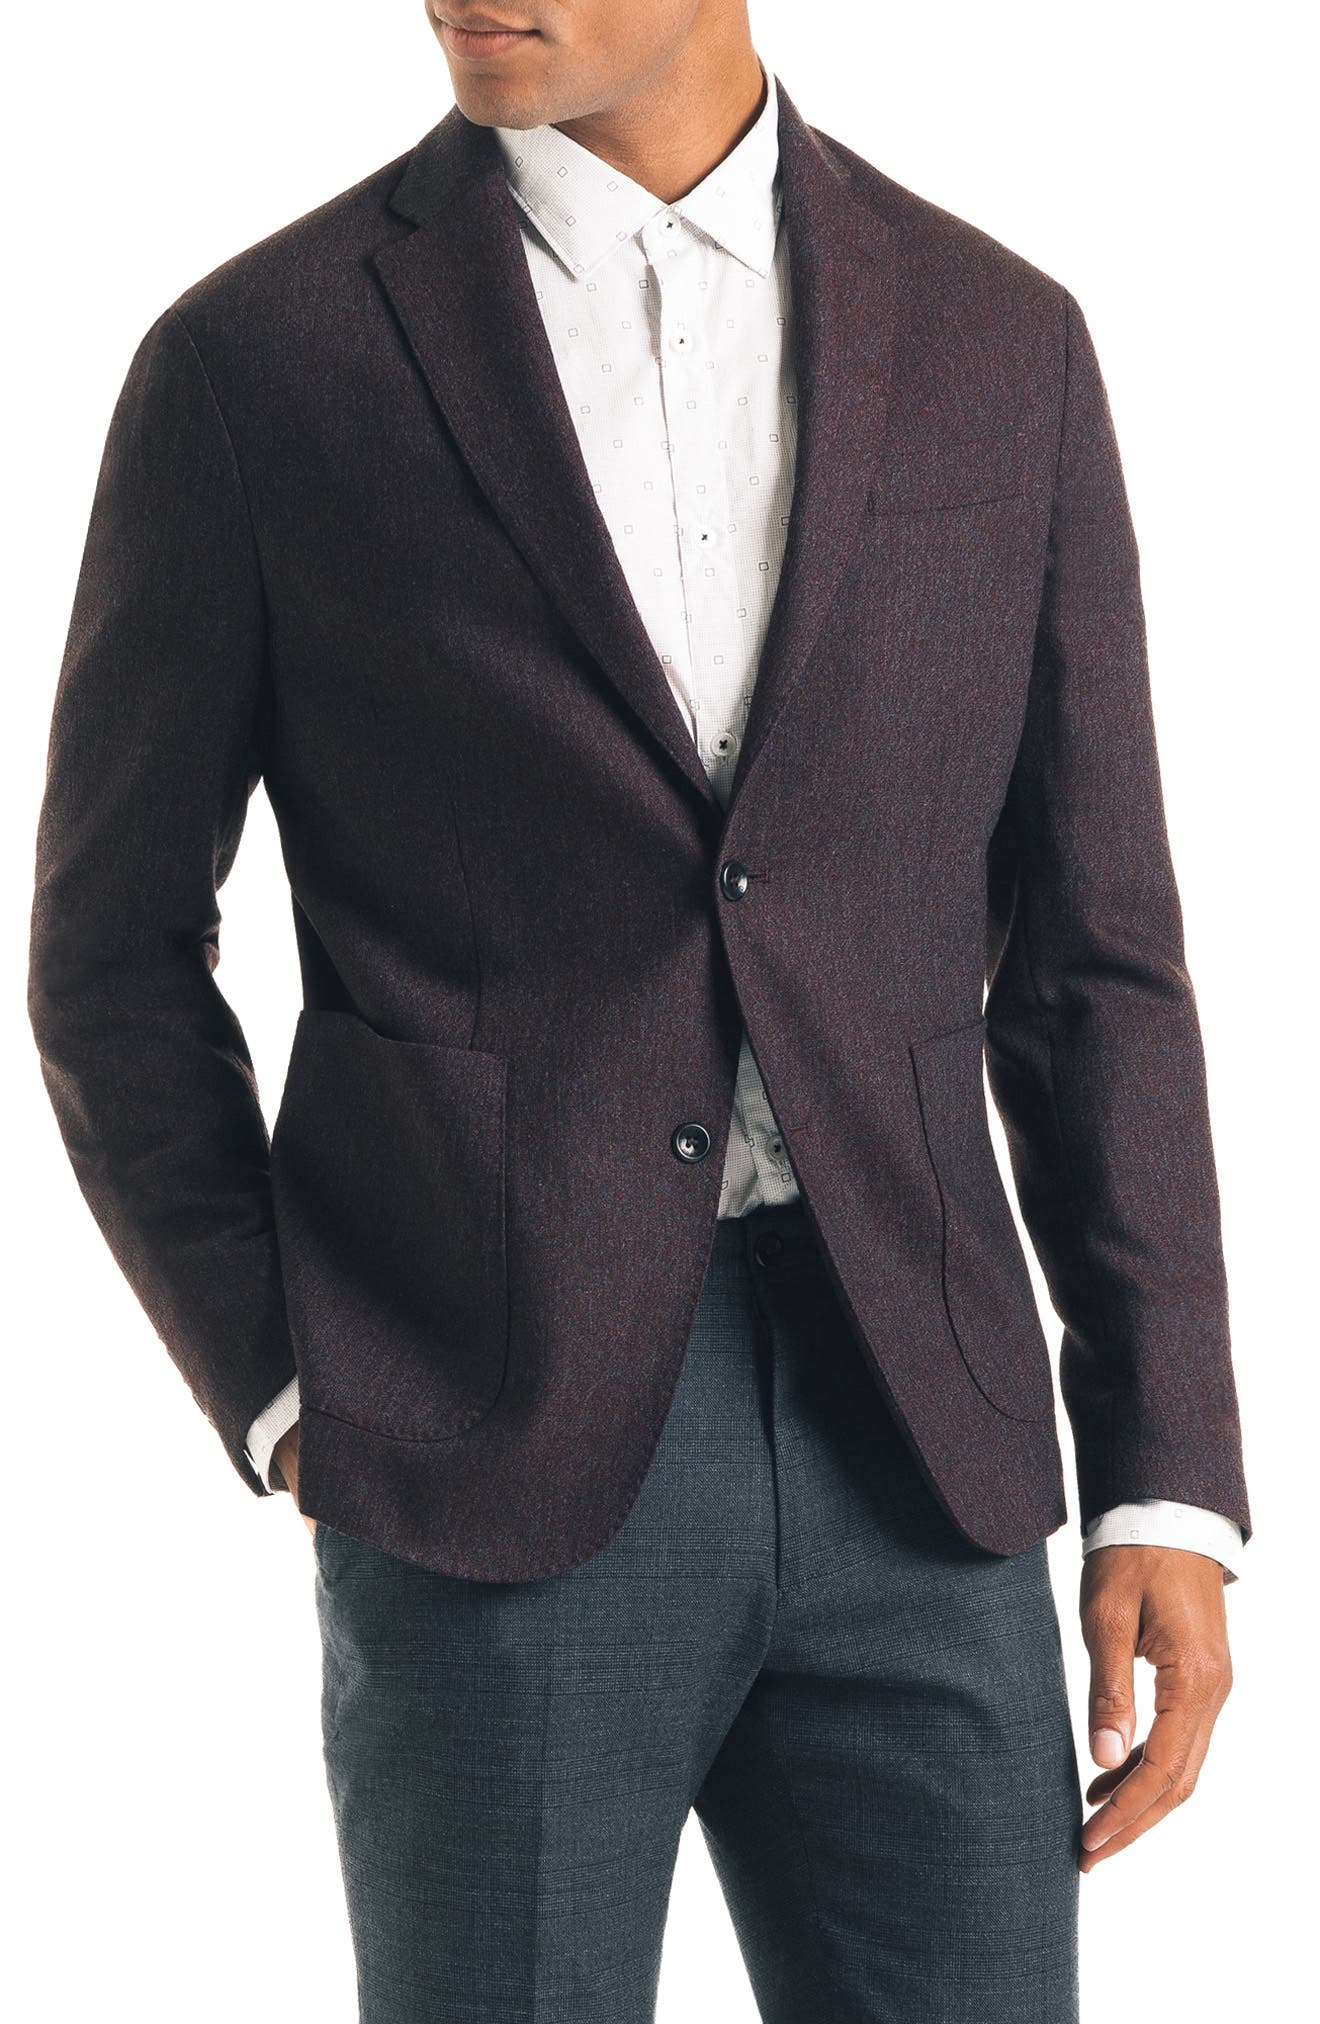 GOOD MAN BRAND Downtown Trim Fit Stretch Wool Blend Sport Coat in Burgundy